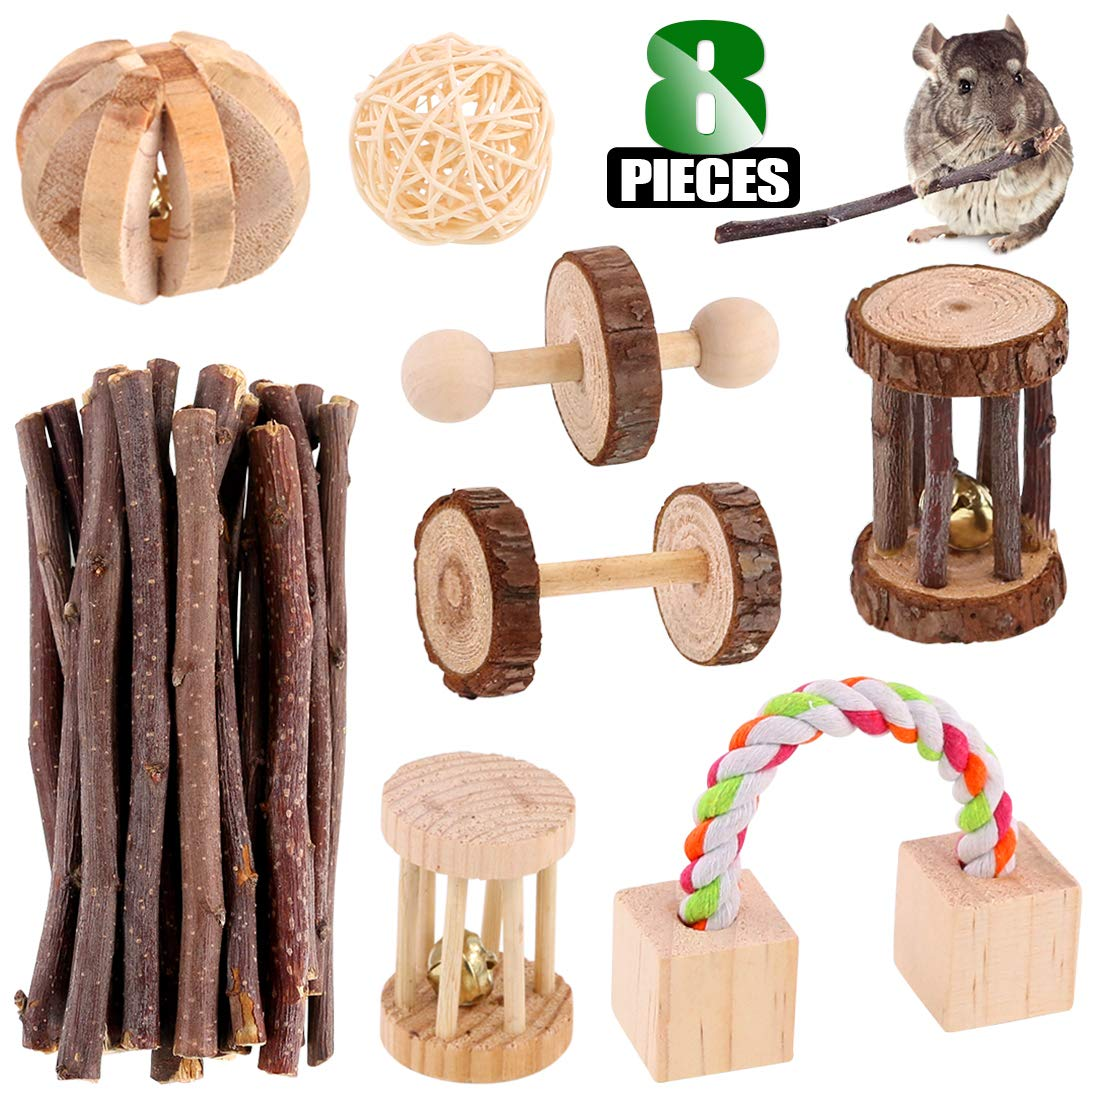 1pcs Natural wood Safety Wooden Teether bird shape Baby Molar Stick Toy